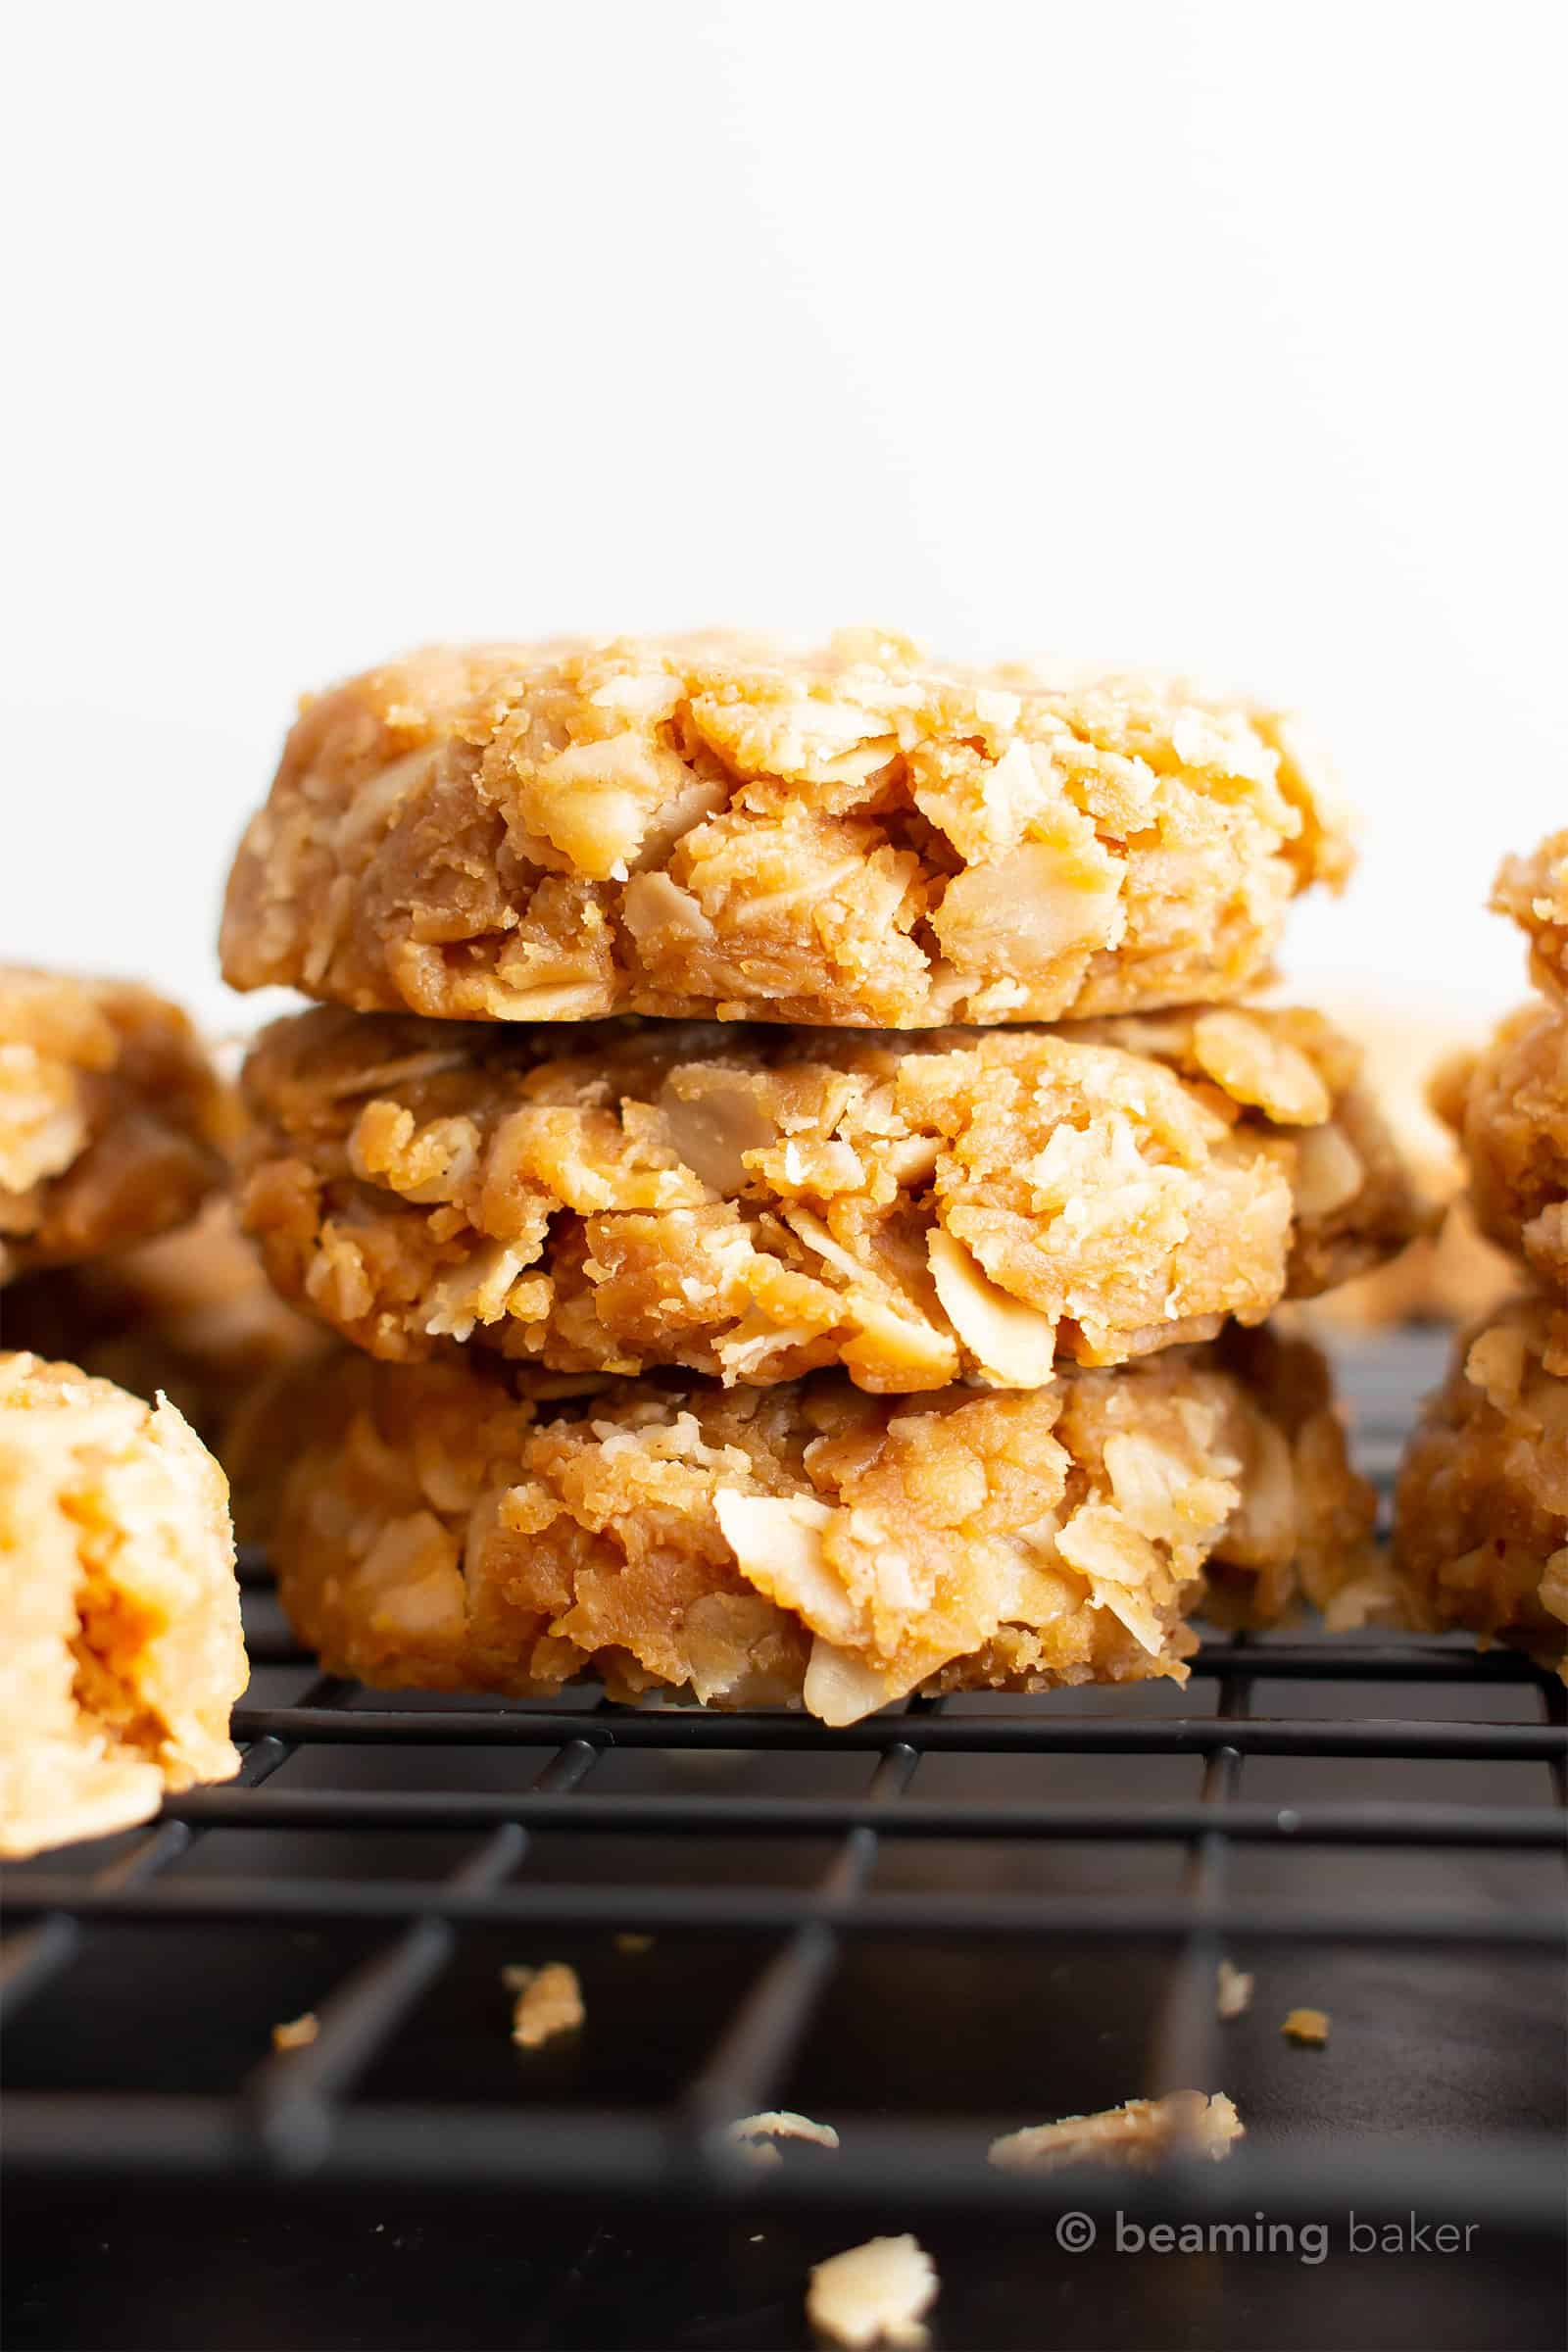 3 ingredient No Bake Peanut Butter Oatmeal Cookies: super easy recipe for healthy no bake cookies without milk—the best gluten free vegan peanut butter cookies! #PeanutButter #NoBake #Oatmeal #Vegan #GlutenFree | Recipe at BeamingBaker.com